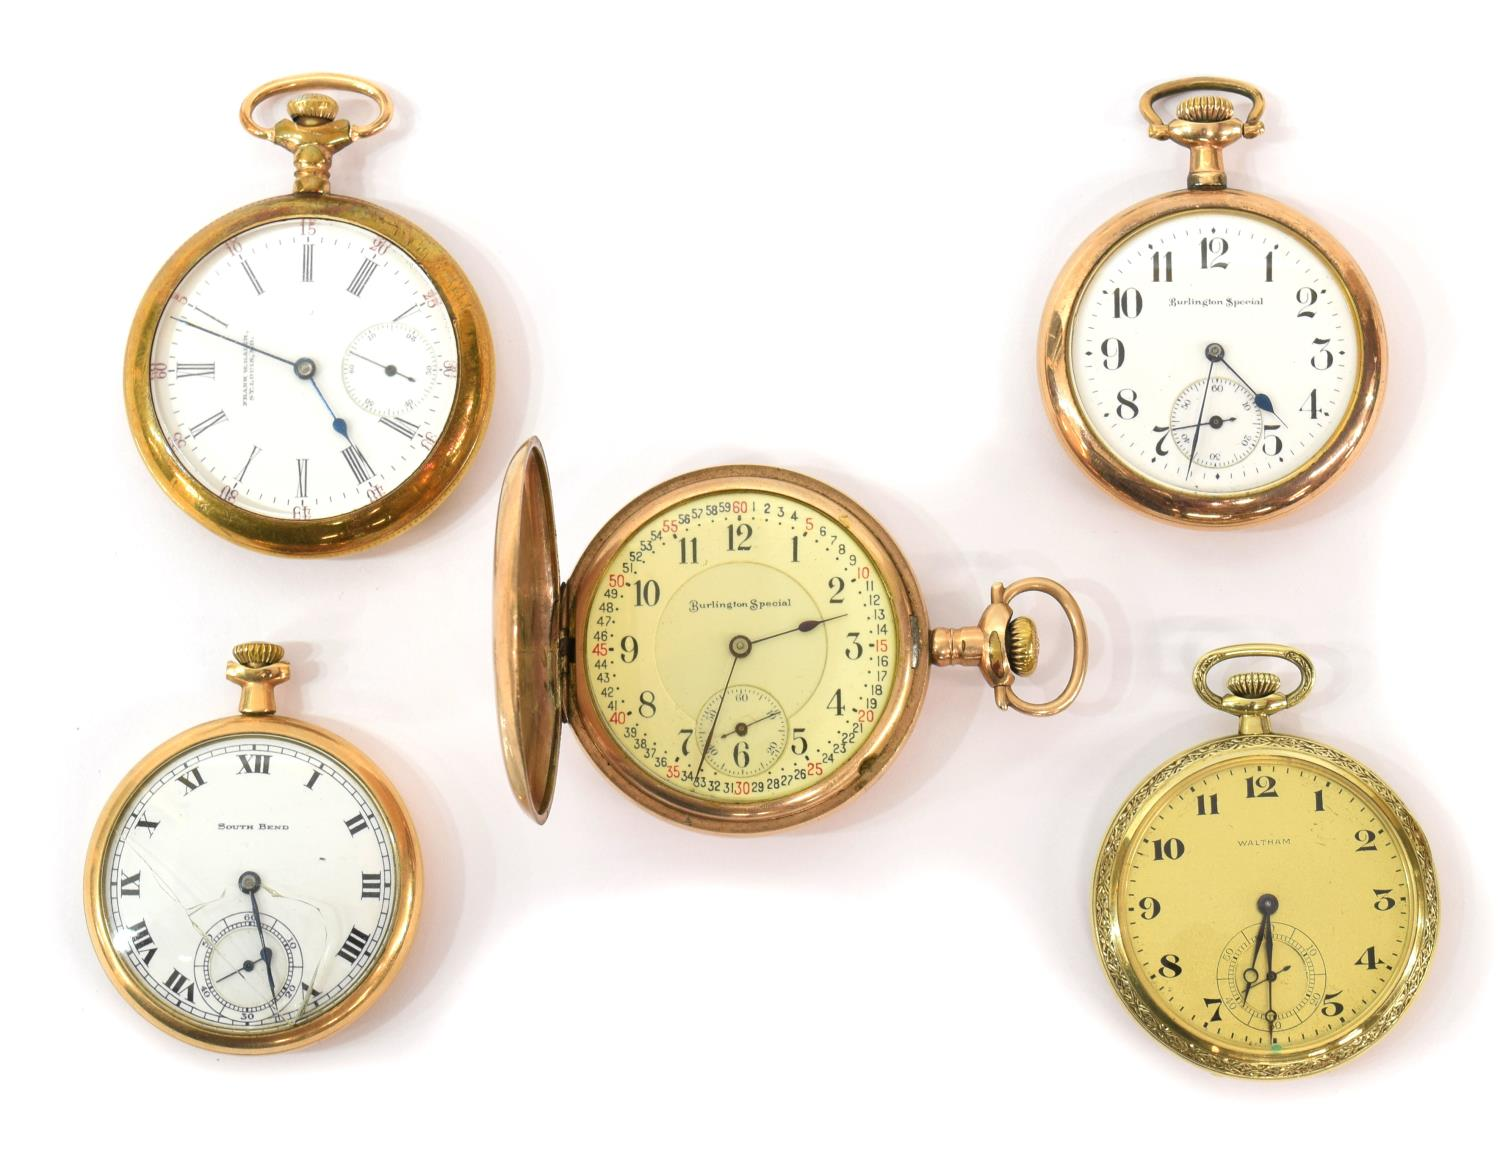 4 pocket watches burlington south bend others march